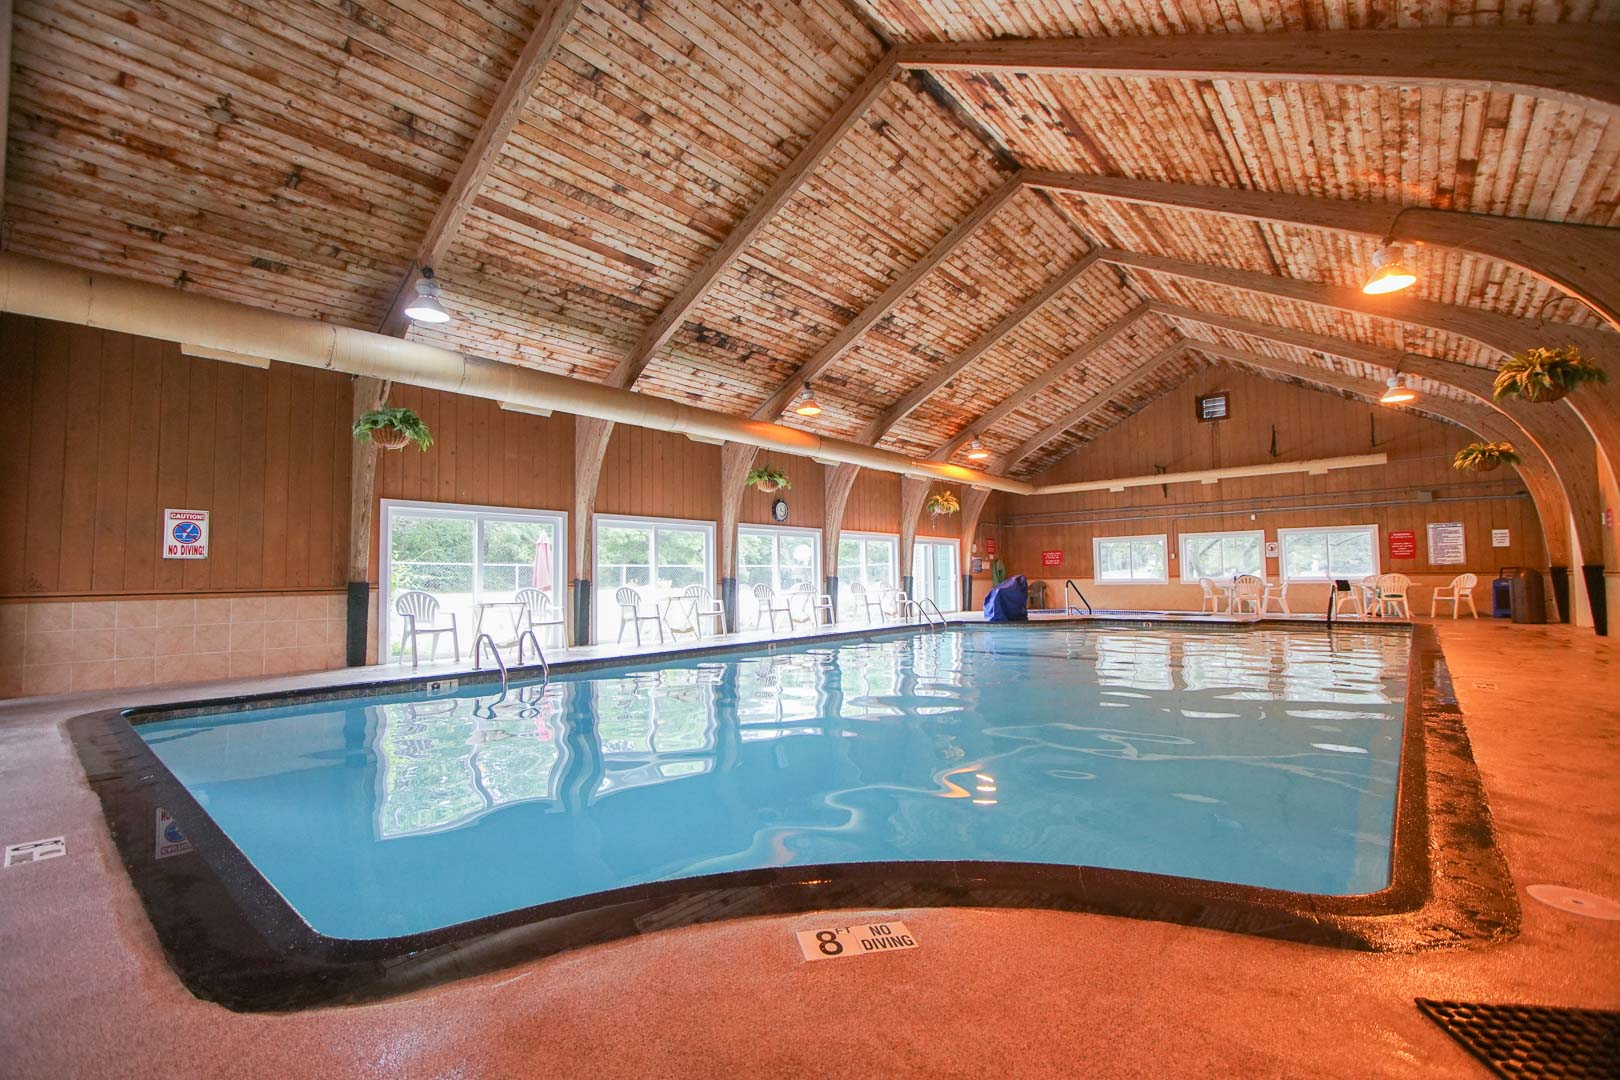 An expansive indoor swimming pool at VRI's Brewster Green Resort in Massachusetts.